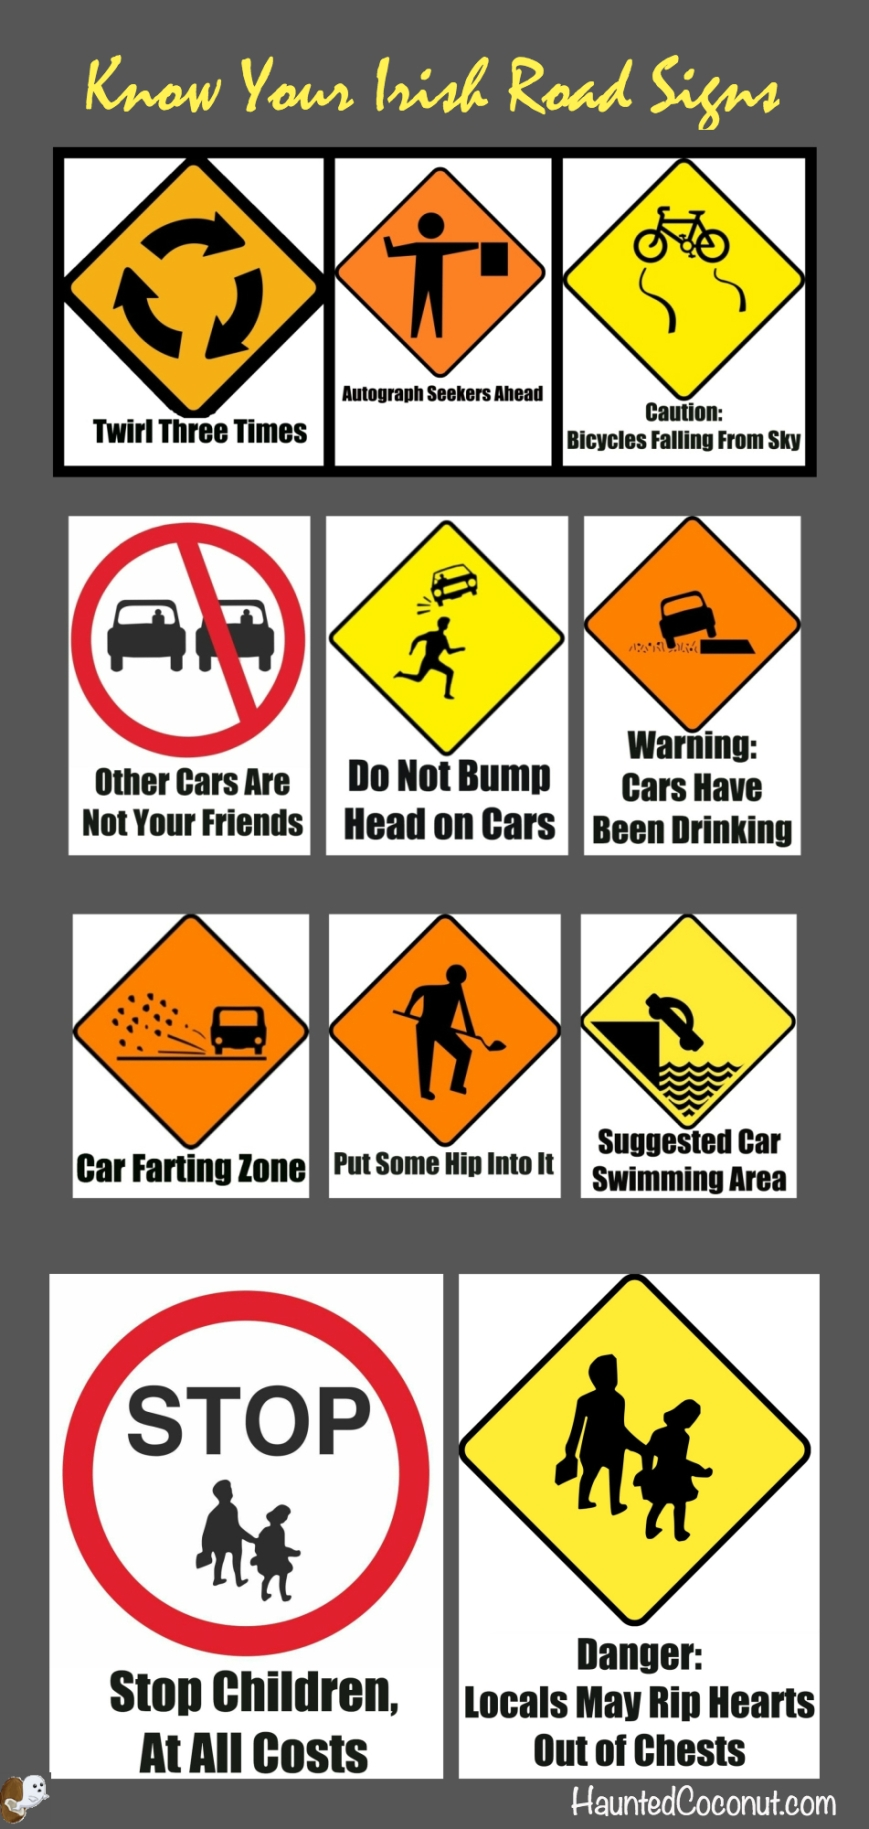 Irish Road Signs-from HauntedCoconutcom